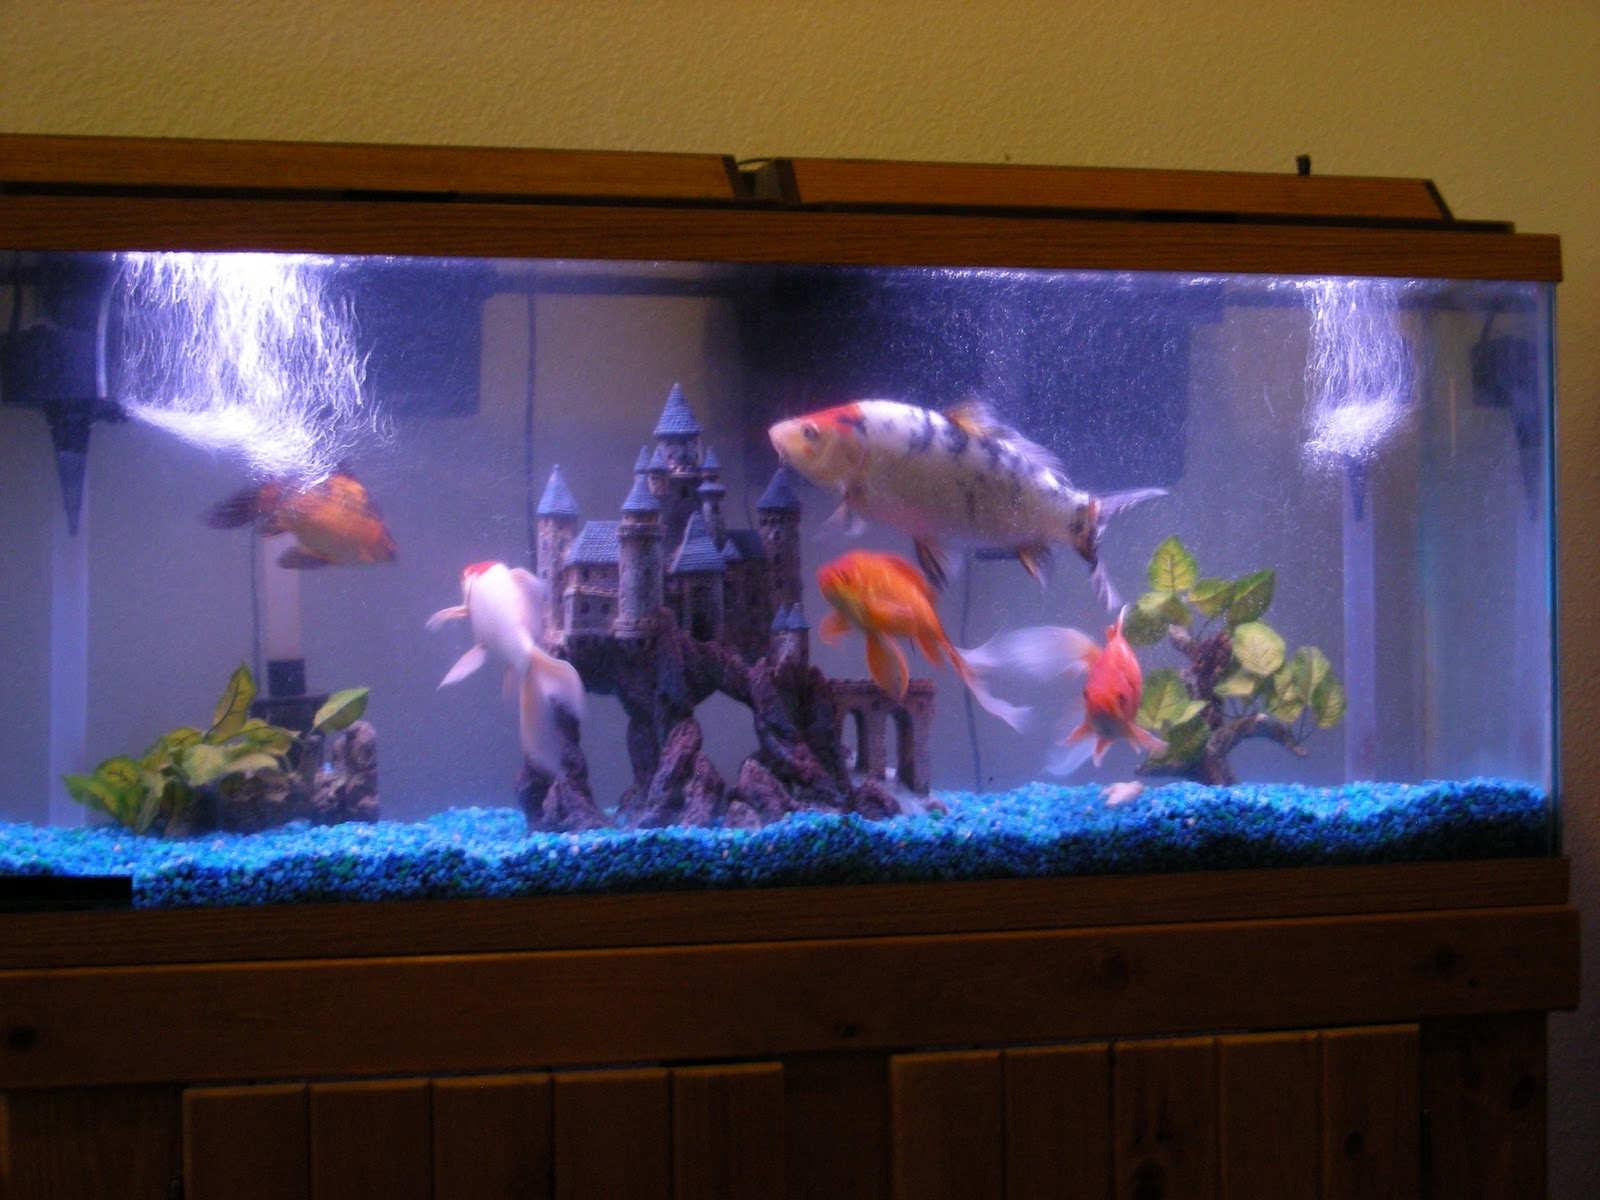 Fish tank decorations 55 gallon 55 gallon 2017 fish for 55 gallon fish tank for sale